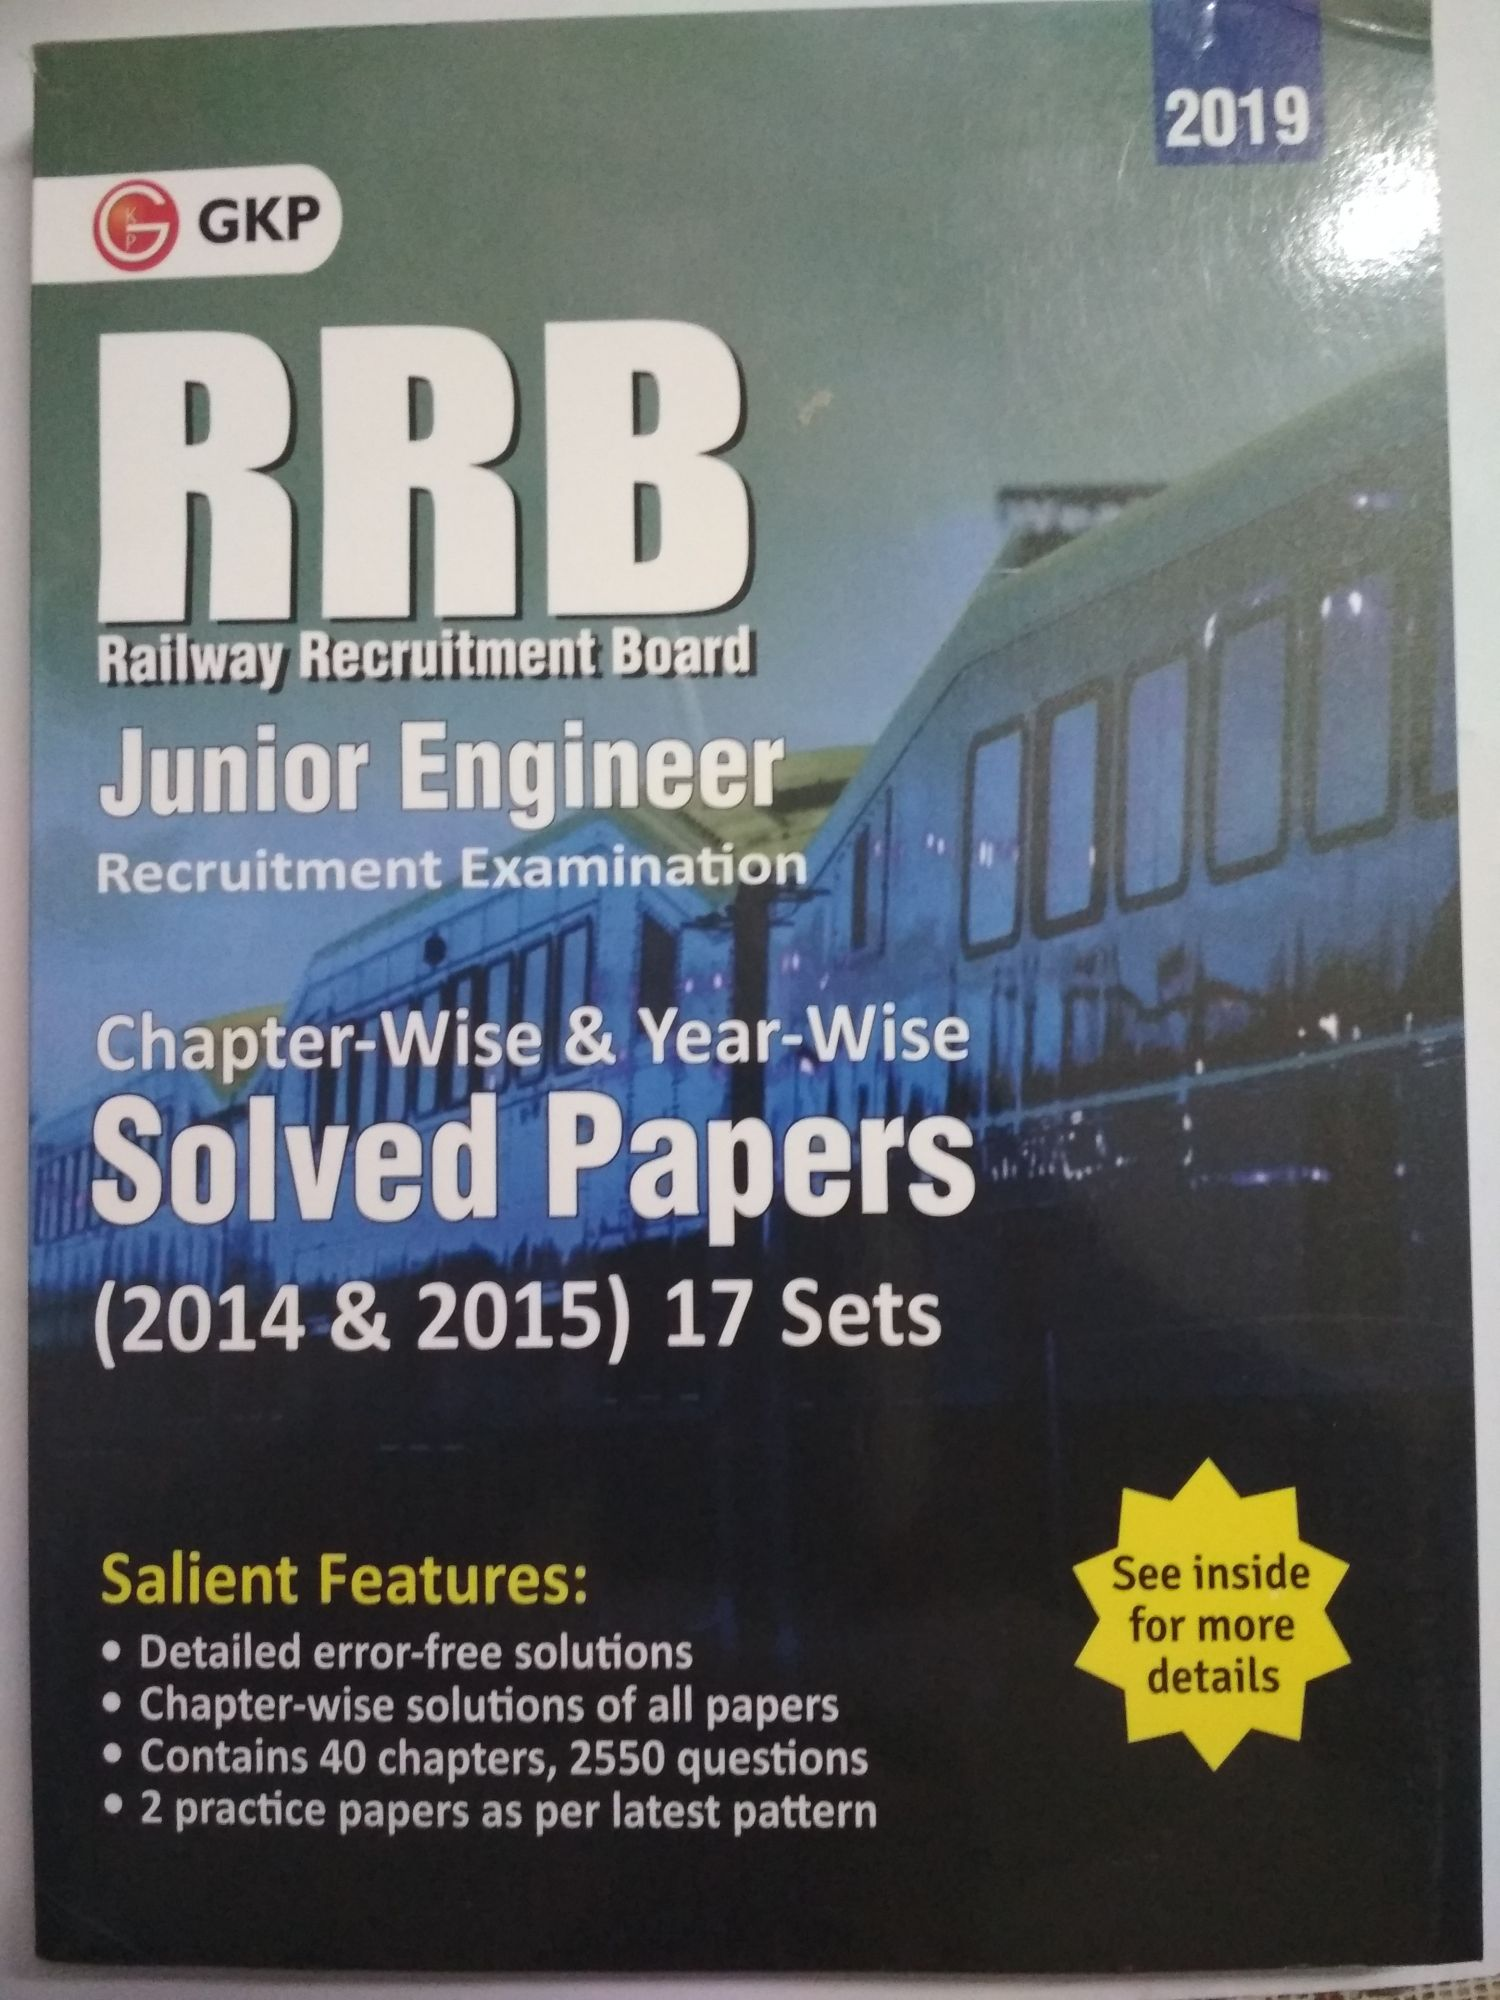 RRB Junior Engineer Exam Solved Paper by gkp